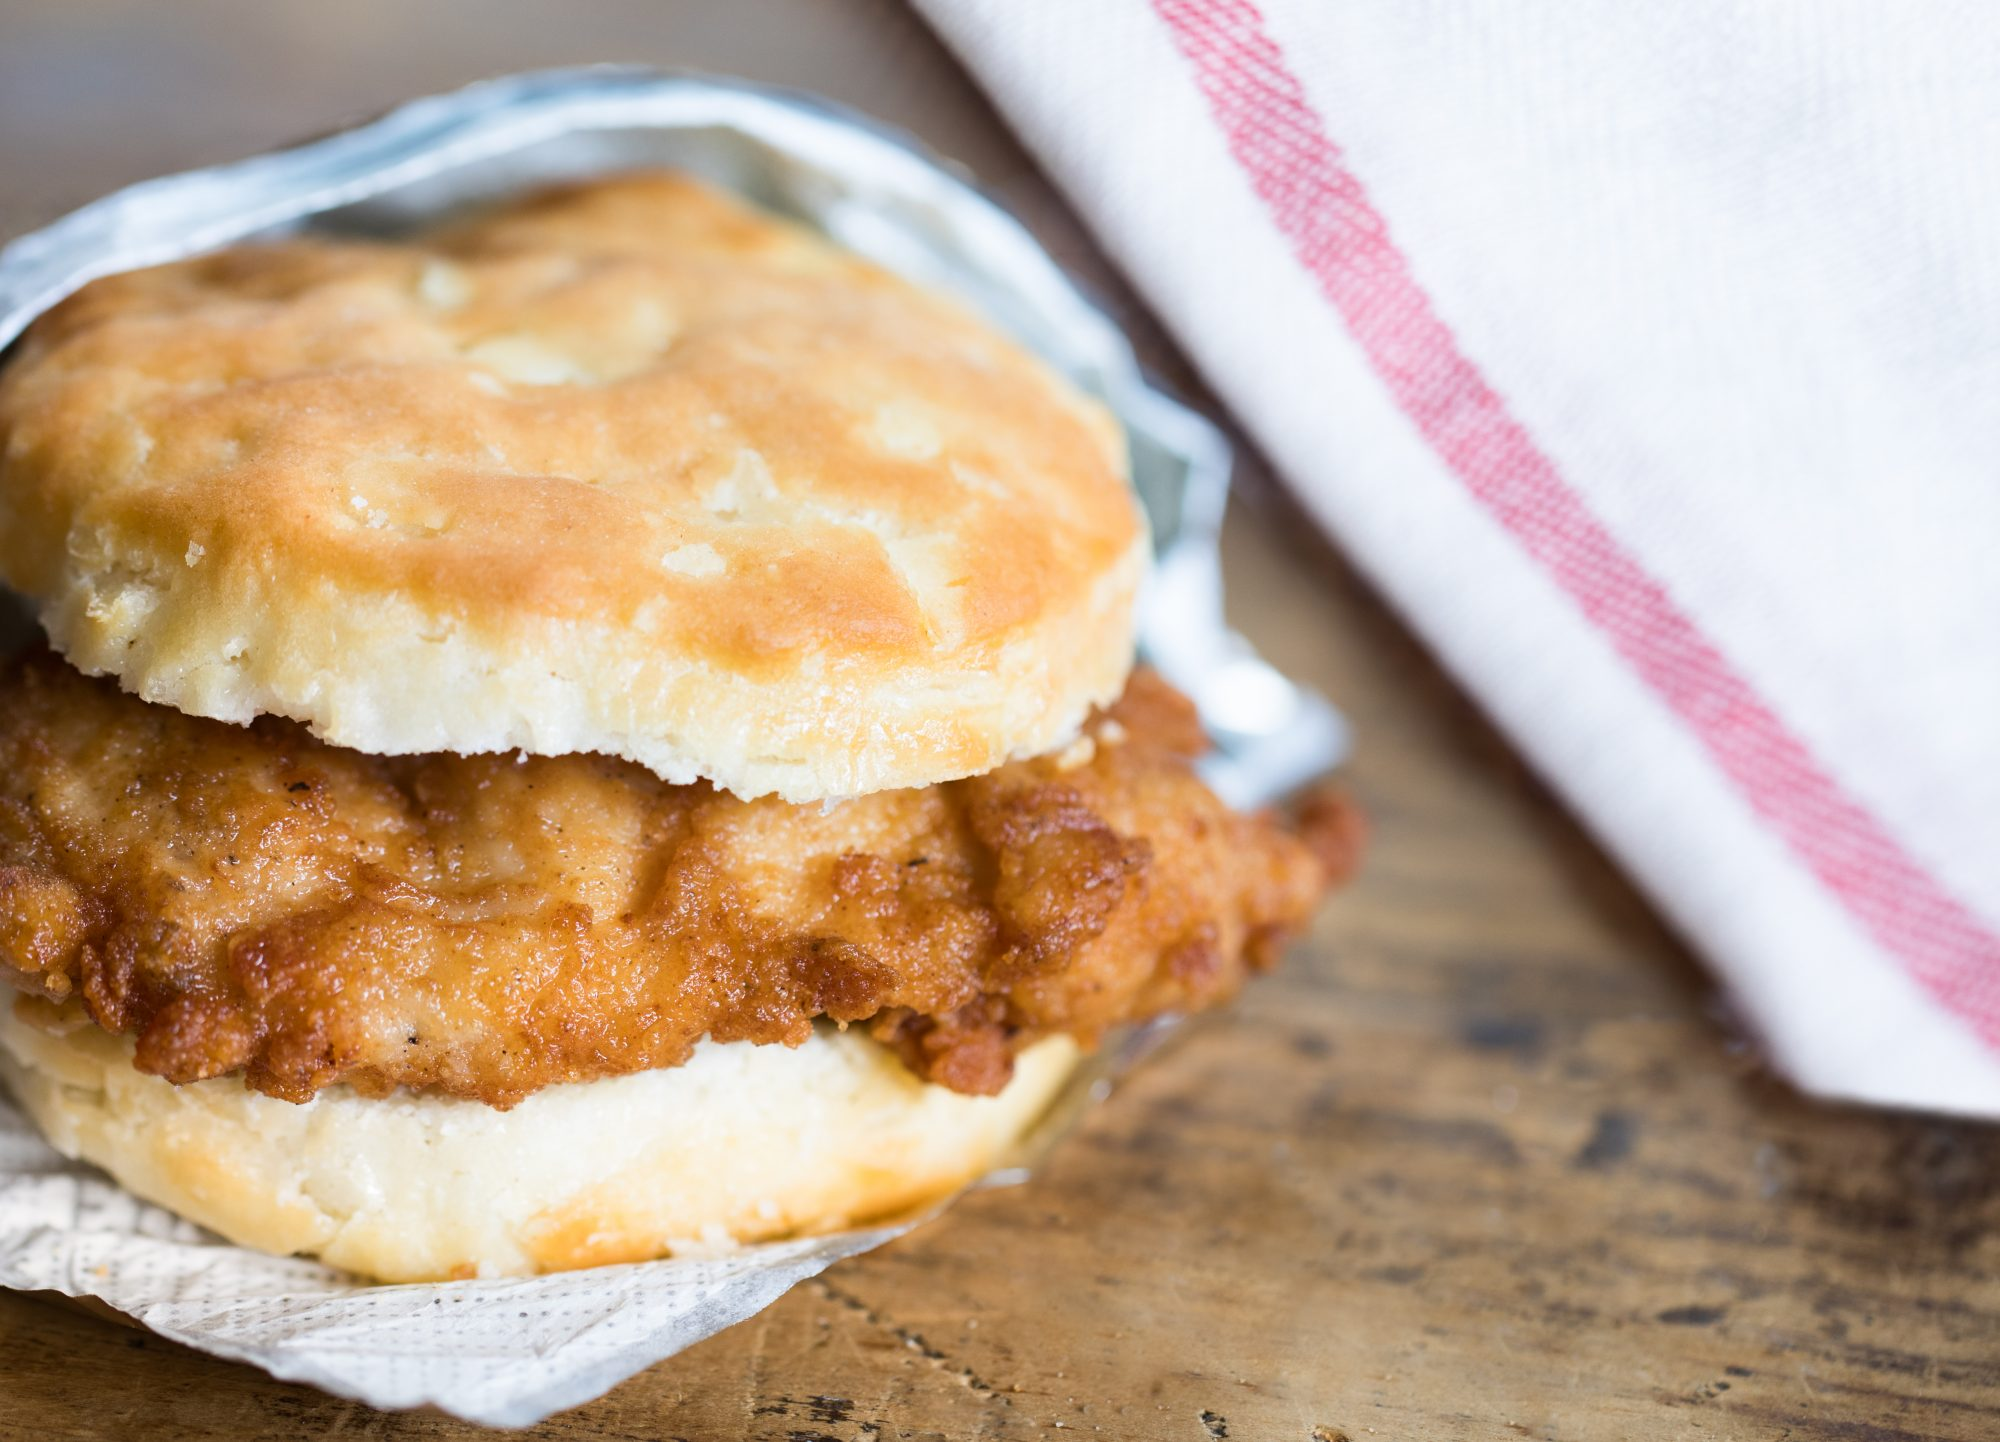 chick-fil-a chicken biscuit